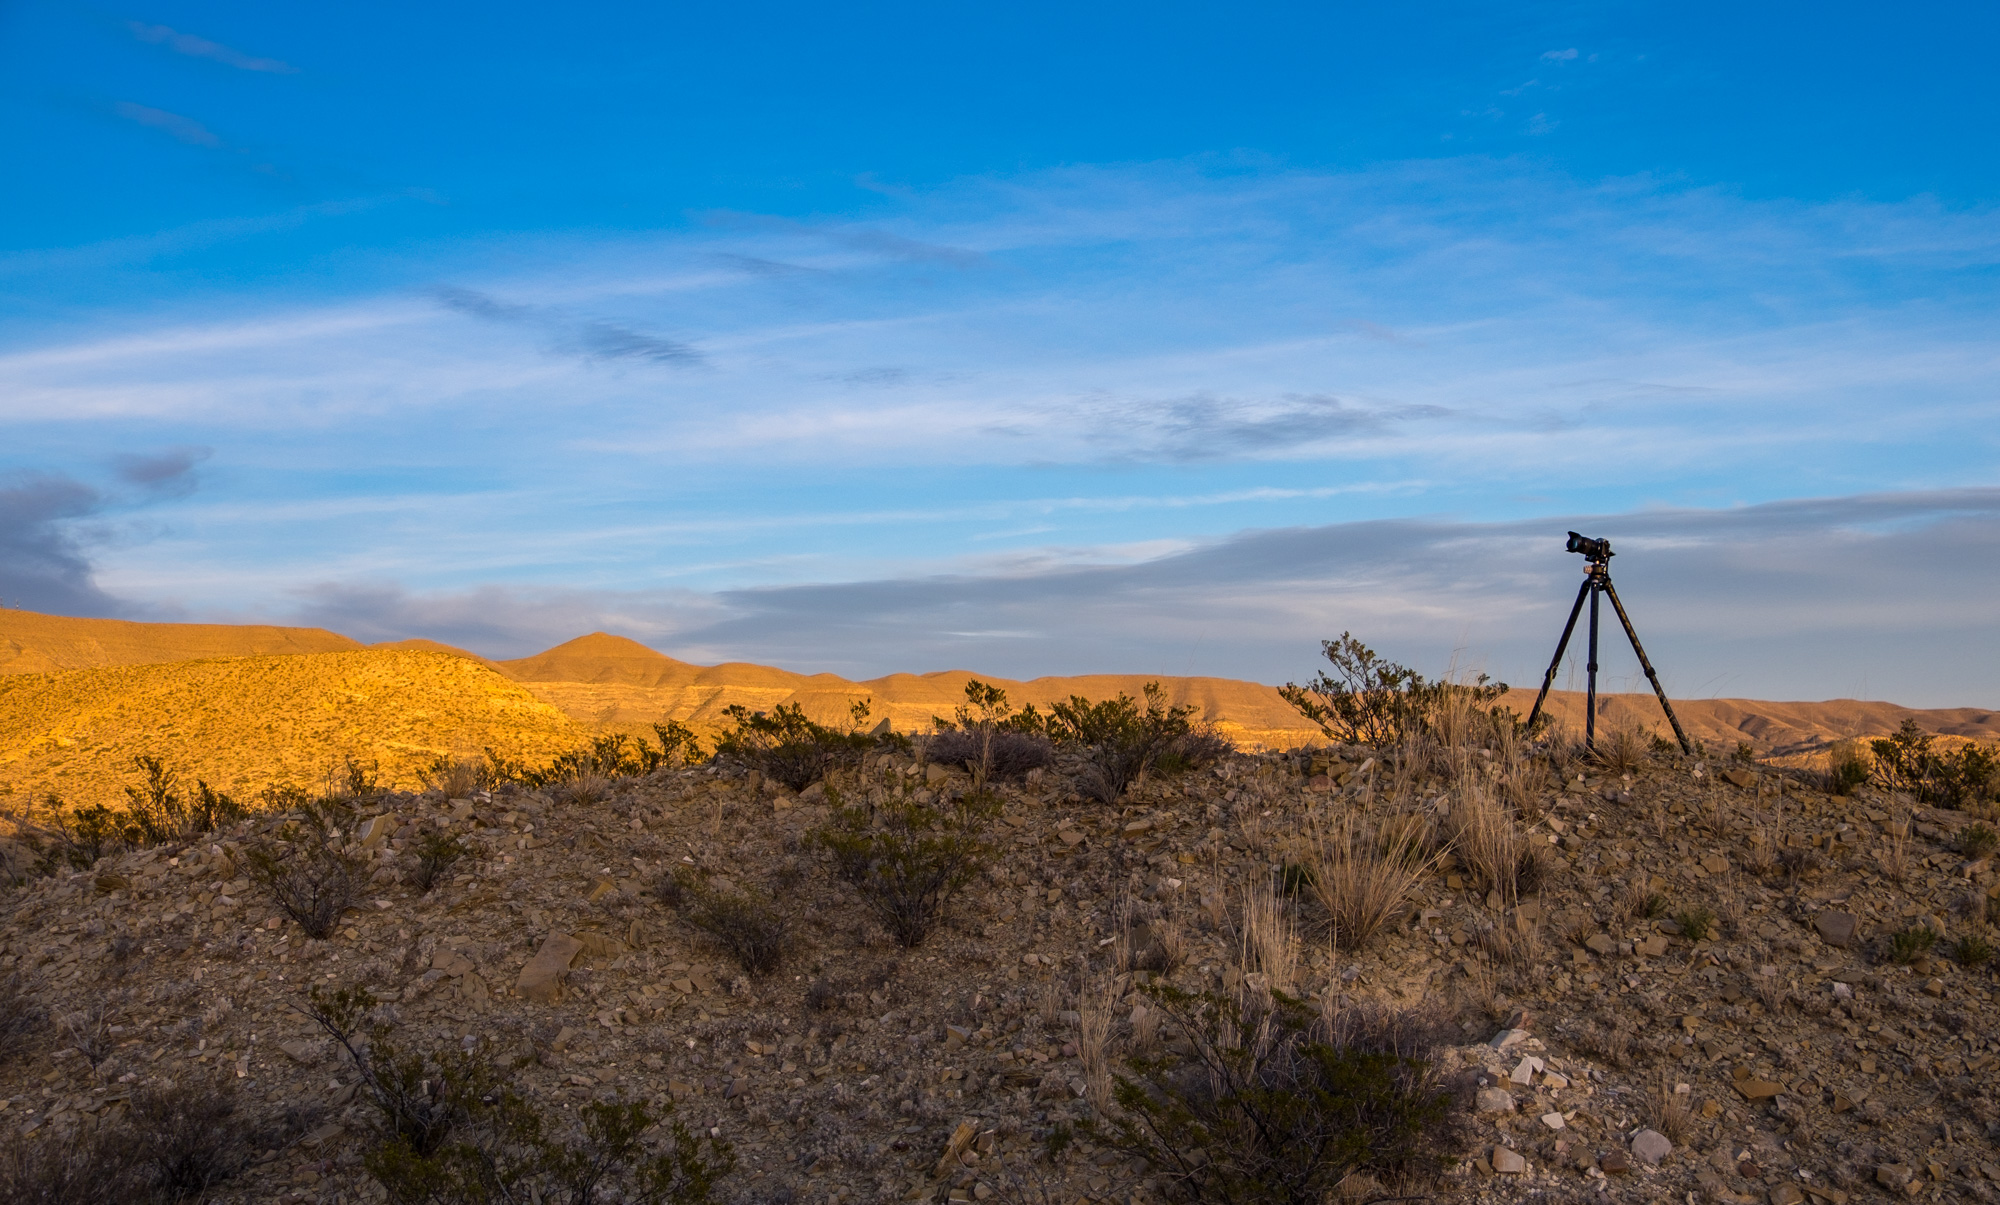 Fujifilm X-T1 catches a sunset timelapse.